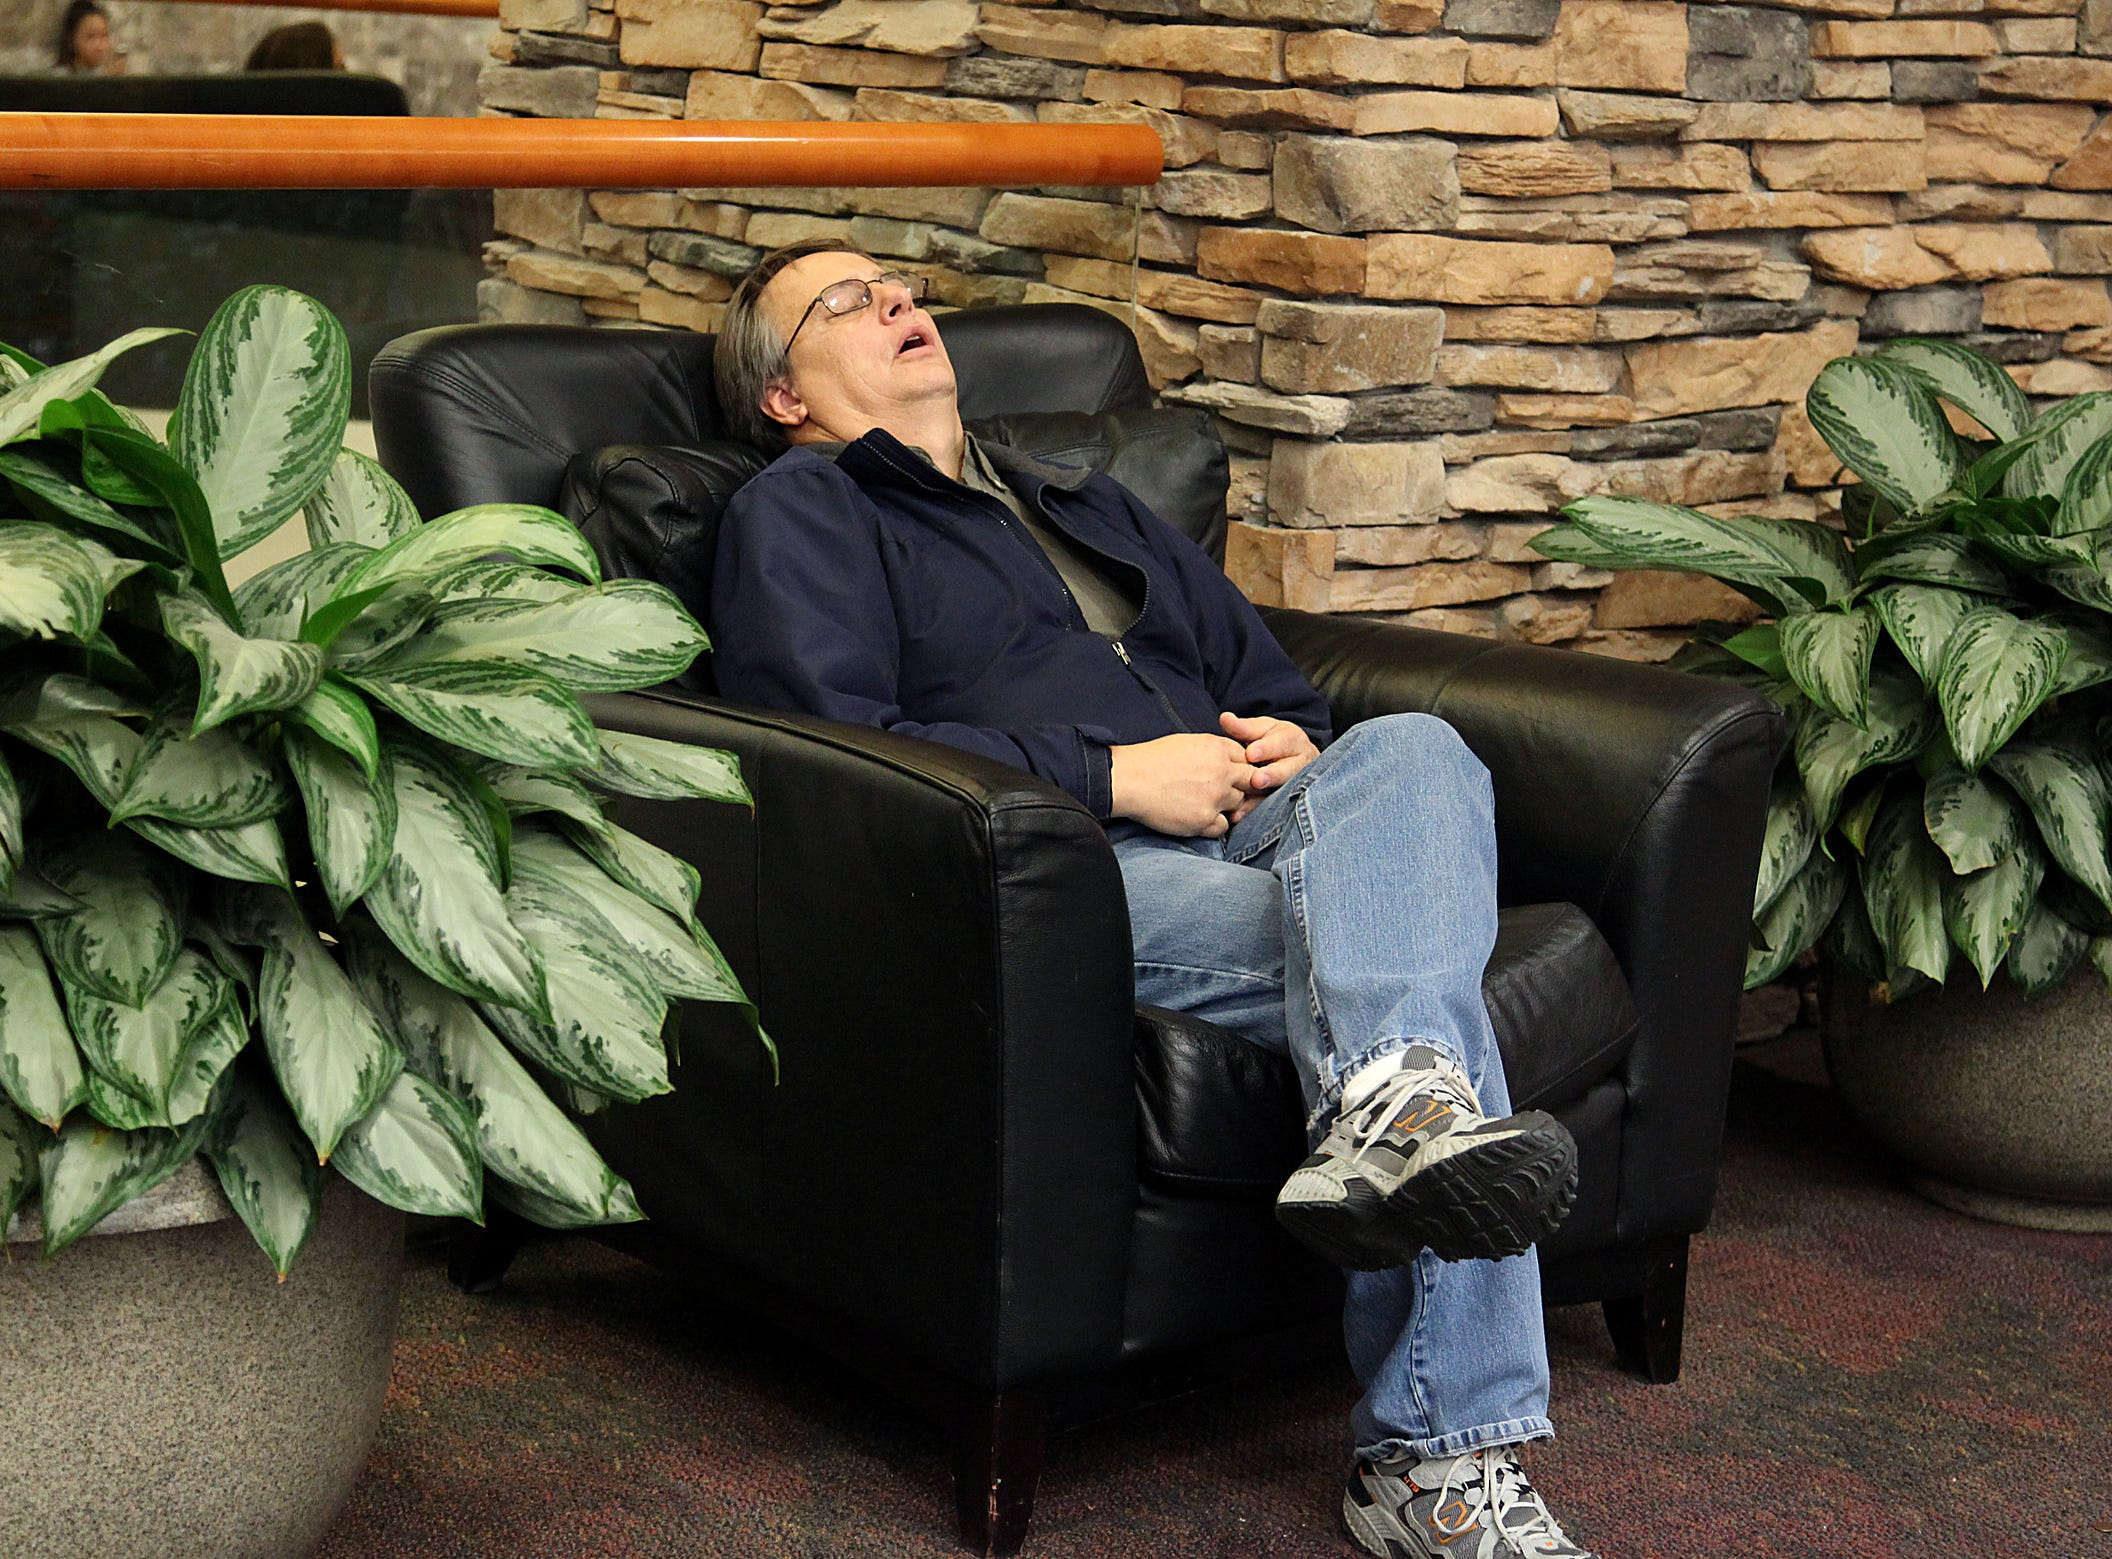 Cliff Jones of Centerville takes a brief nap while his wife shops at Valley West Mall on Nov. 12, 2012.